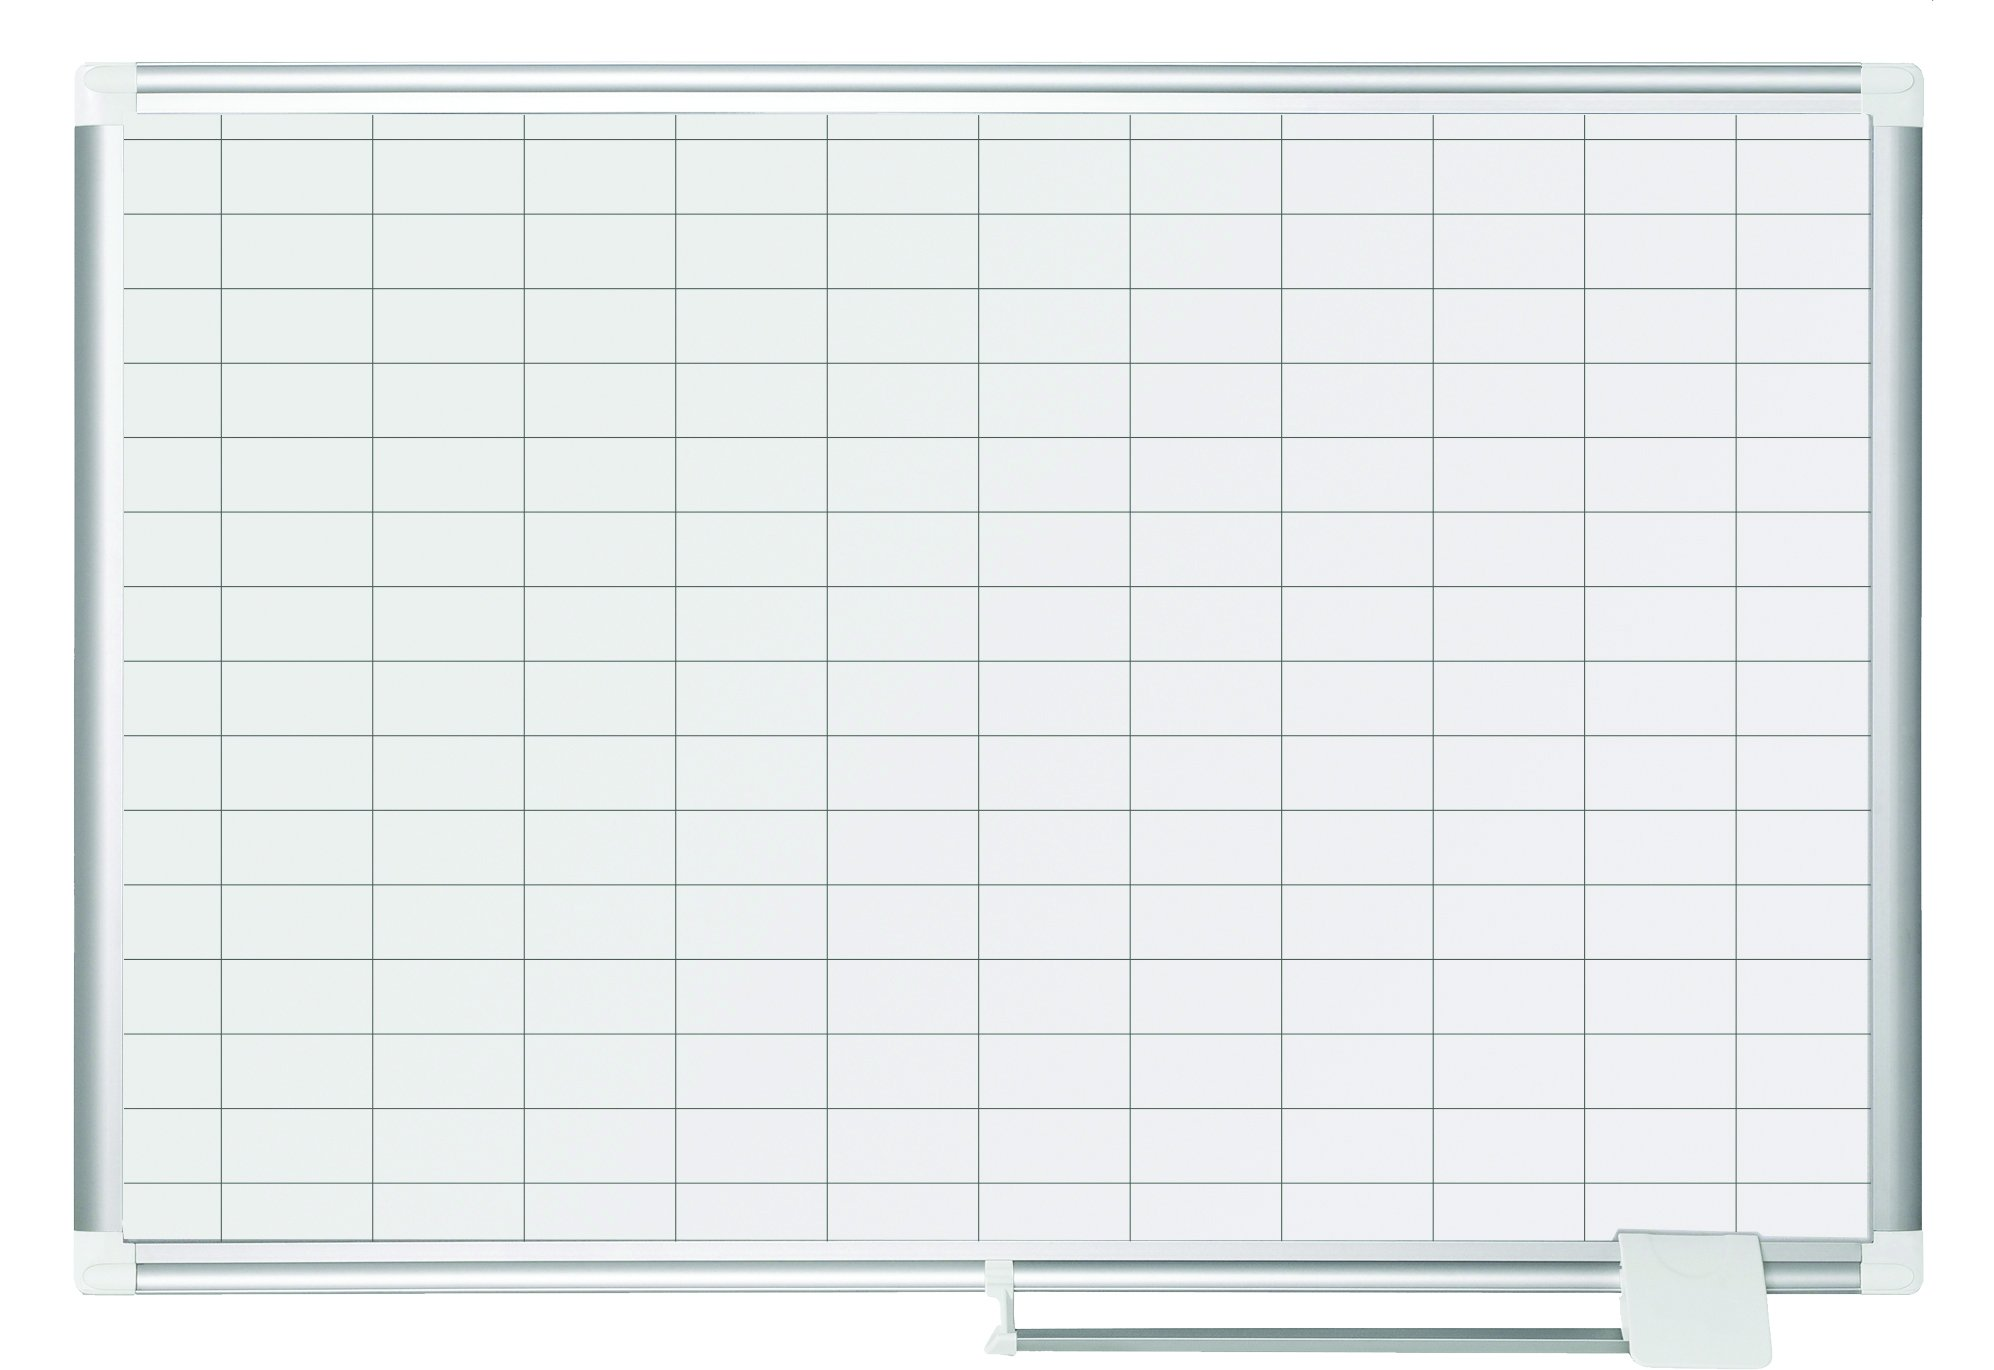 Bi-Office MA039 2830 A New Generation Check 25x50 mm Squares Magnetic Planner with Kit 90 x 60 cm